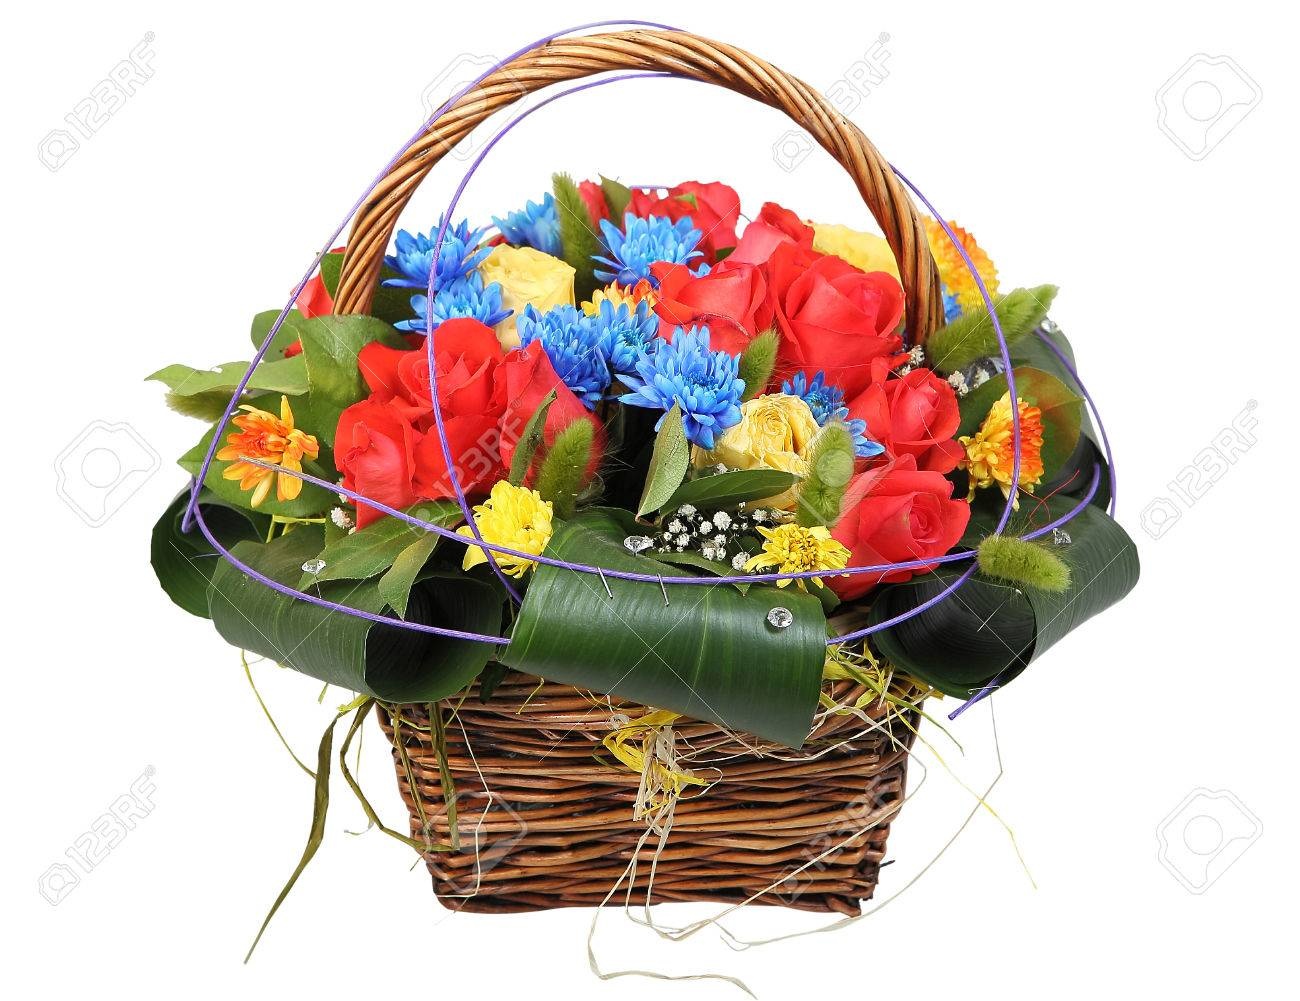 Bouquet Of Flowers In A Wicker Basket Floral Arrangement With